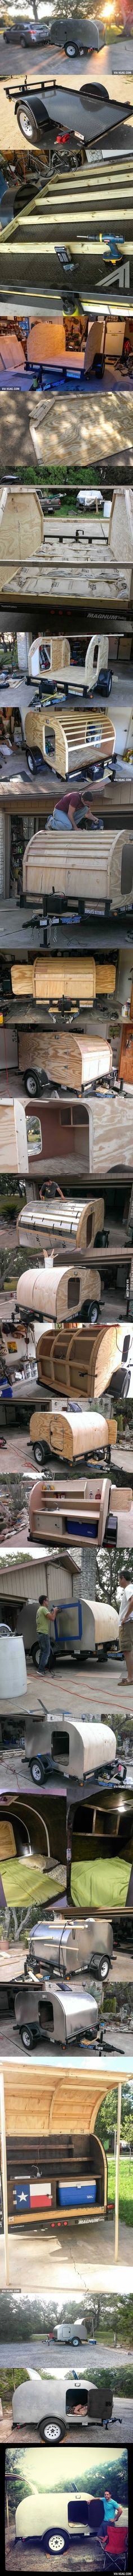 I decided build a tiny camping trailer. I had no experience but I gave it my best shot. - 9GAG